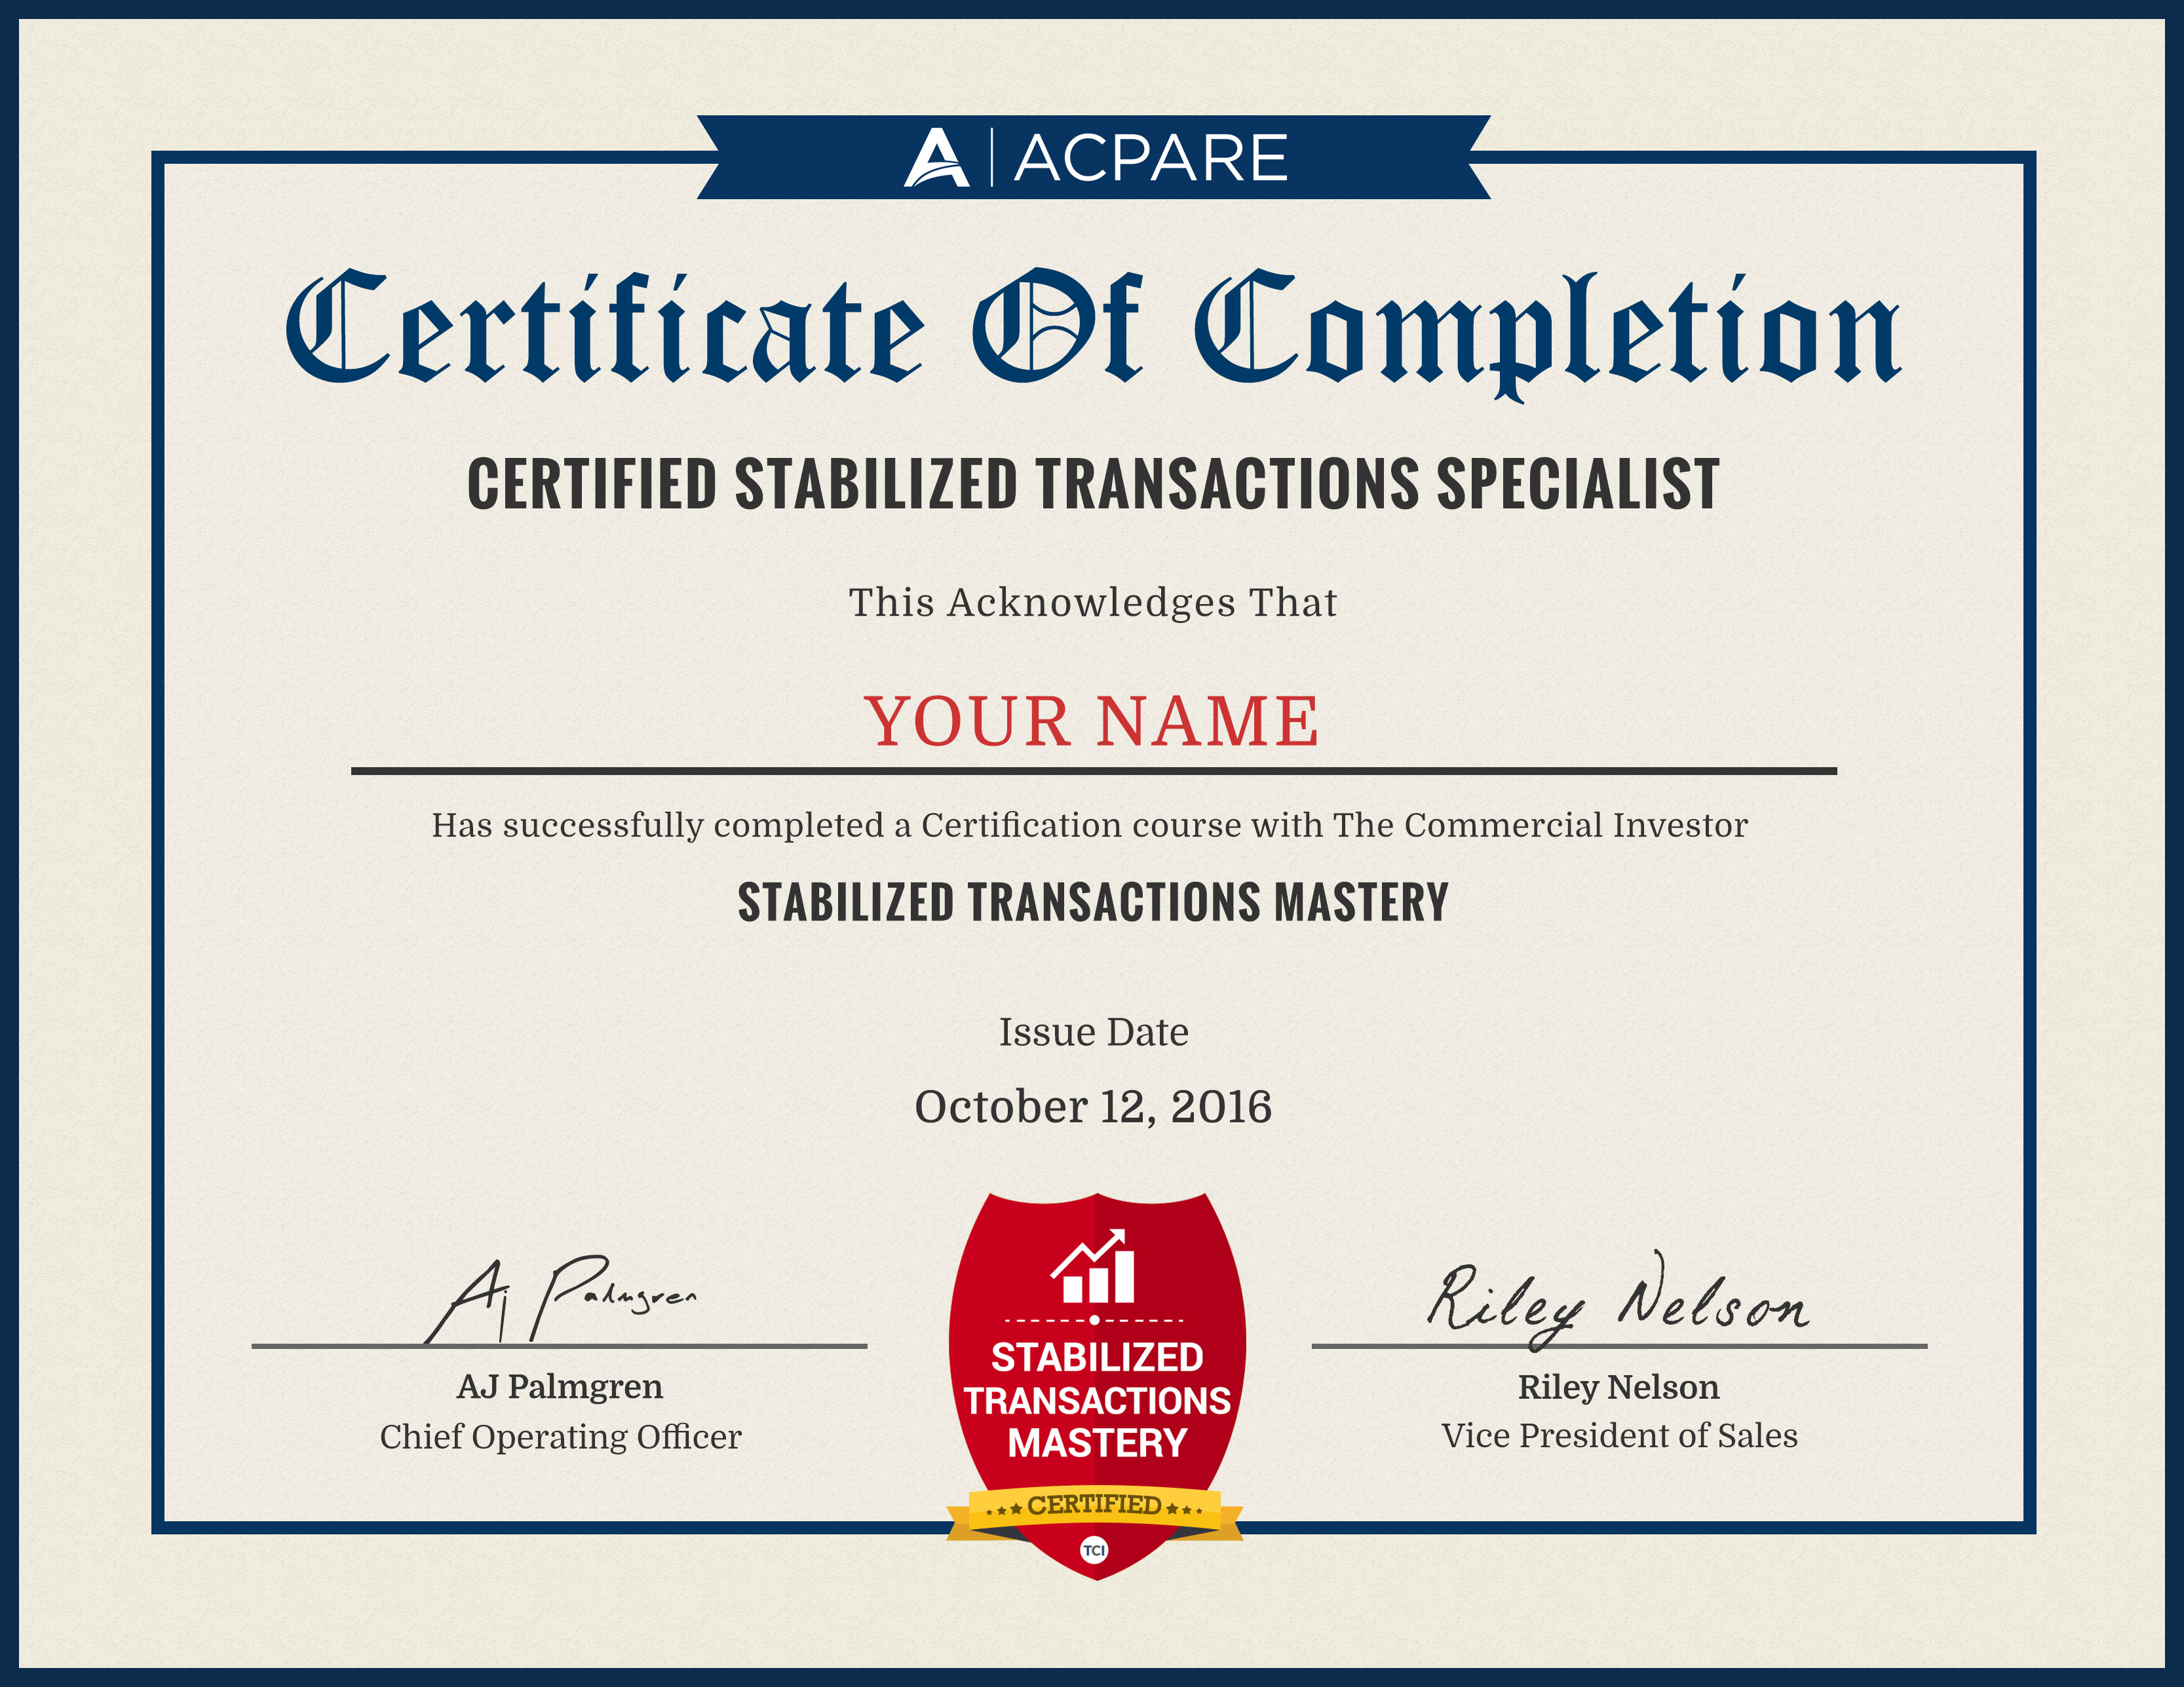 Acpare hq certification and the best part your digital certificate is full color so make sure to print it up frame it and display it proudly in your home or office 1betcityfo Image collections